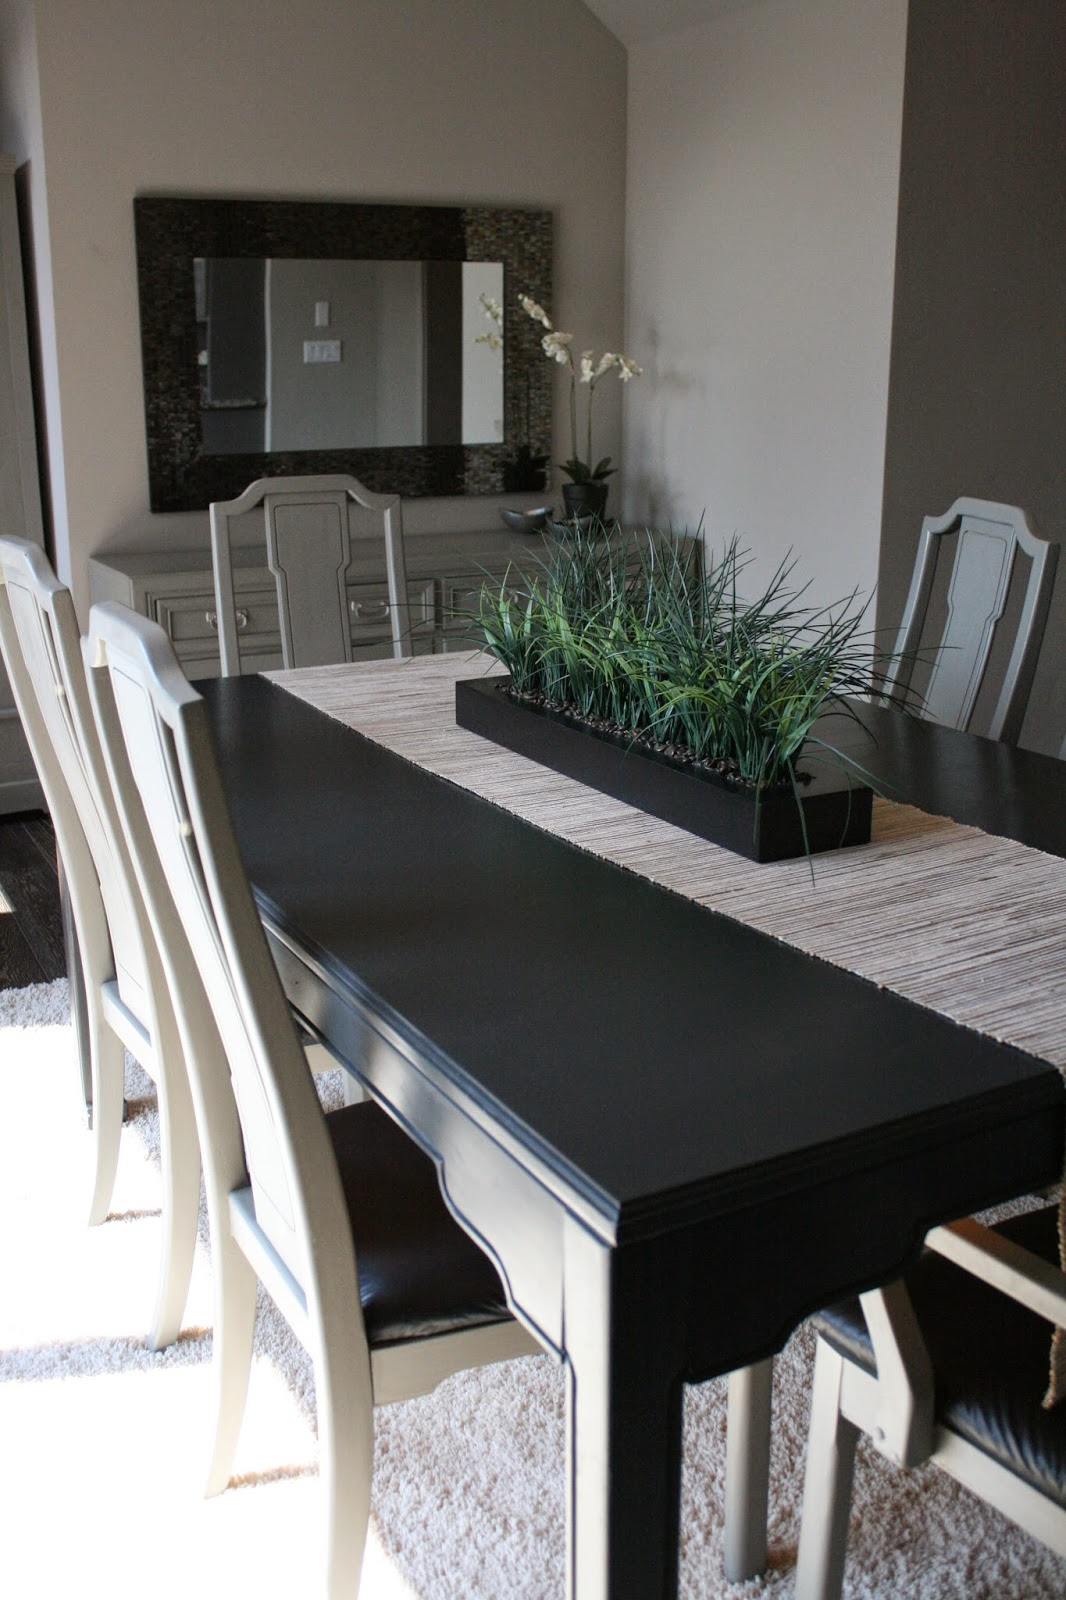 Lovely We painted all the dining chairs with two coats of French Linen Chalk Paint Graphite paired with French Linen is quite a striking bination